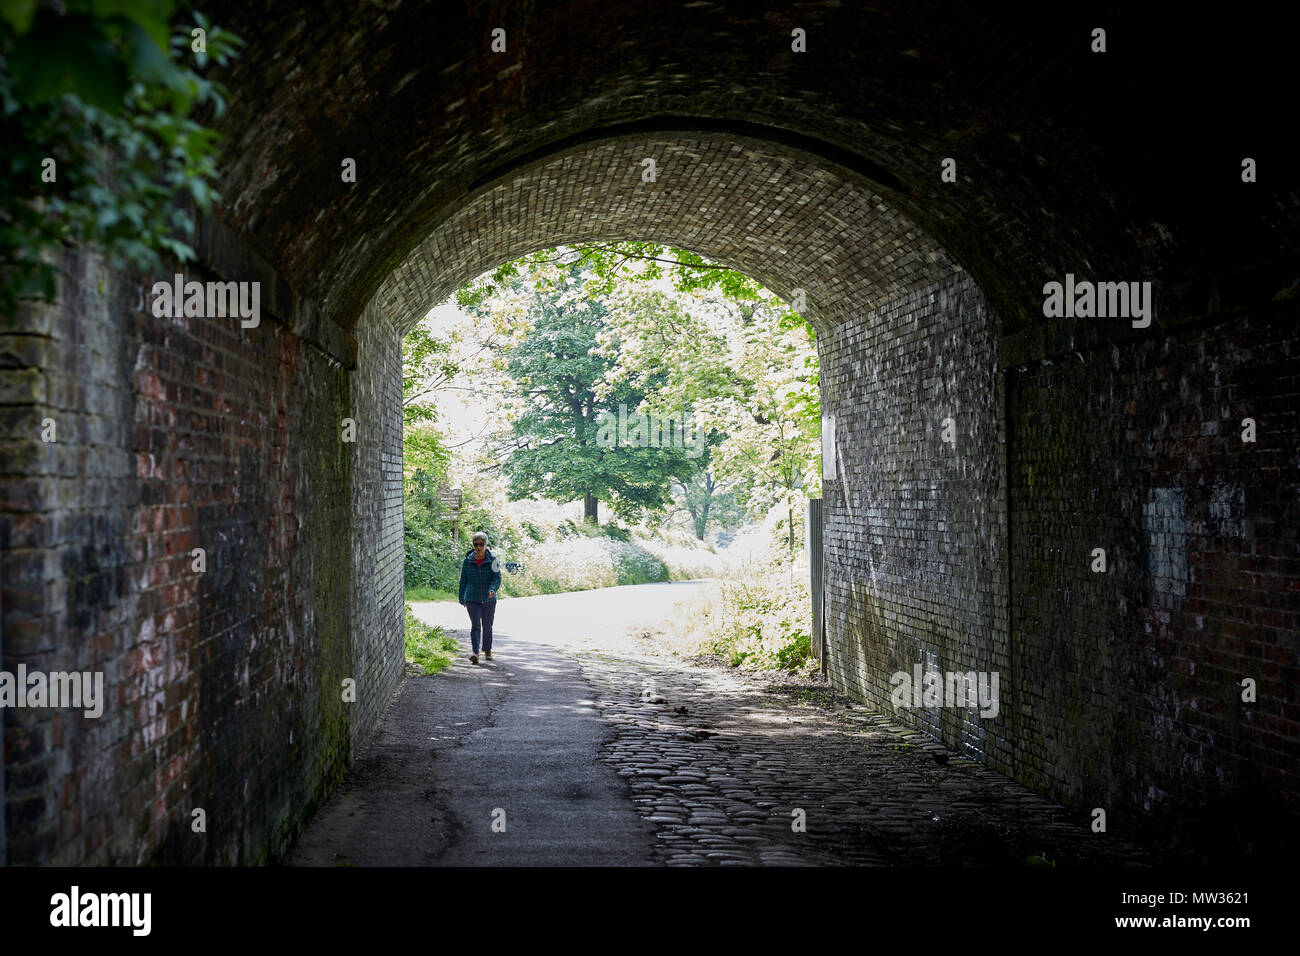 THE GIANTS MONEY BOX a railway bridge with a large slot leading to Reddish Vale country park in Stockport, Cheshire. - Stock Image